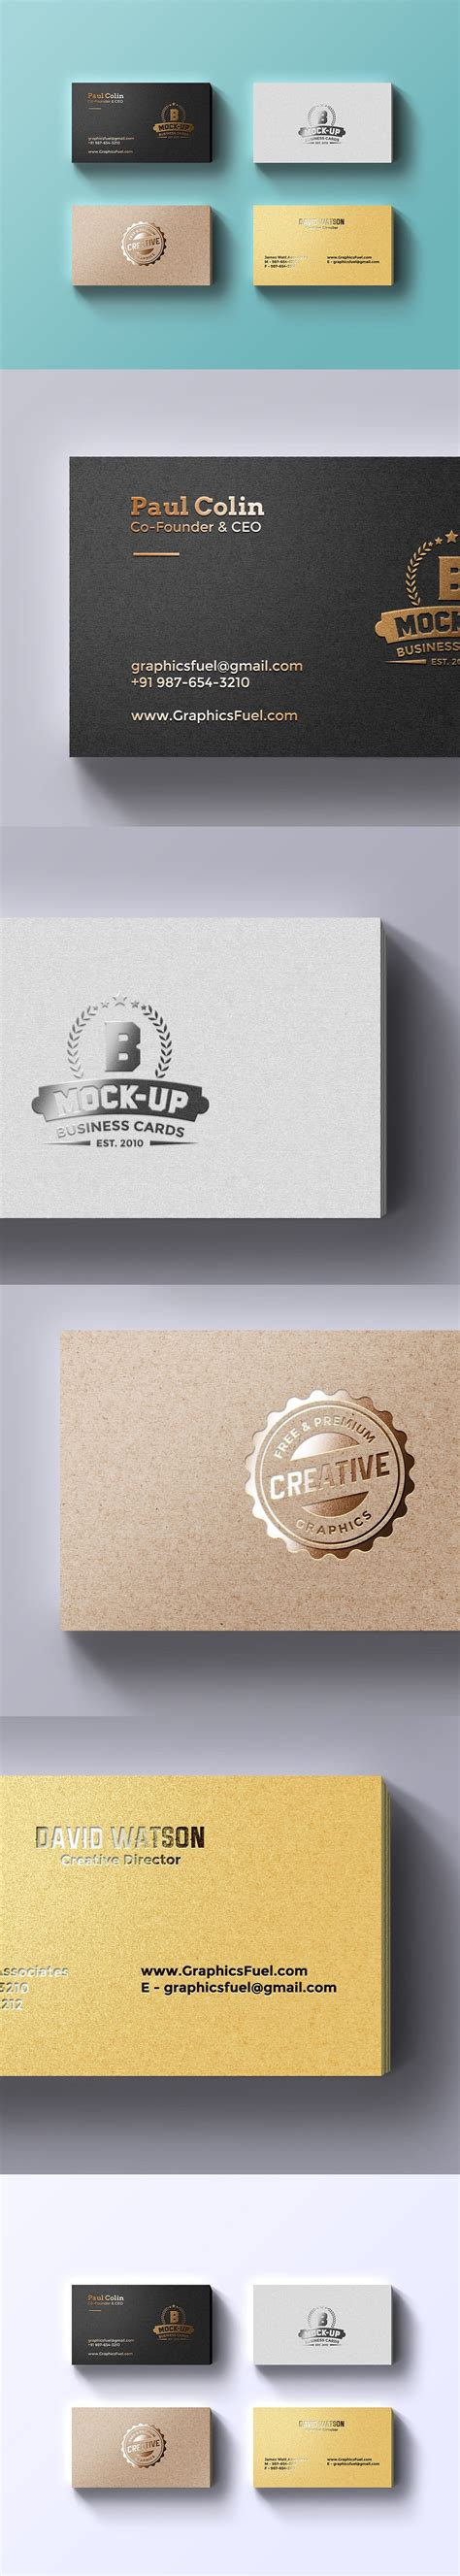 silver foil business card psd template foil business cards mockup psd graphicsfuel